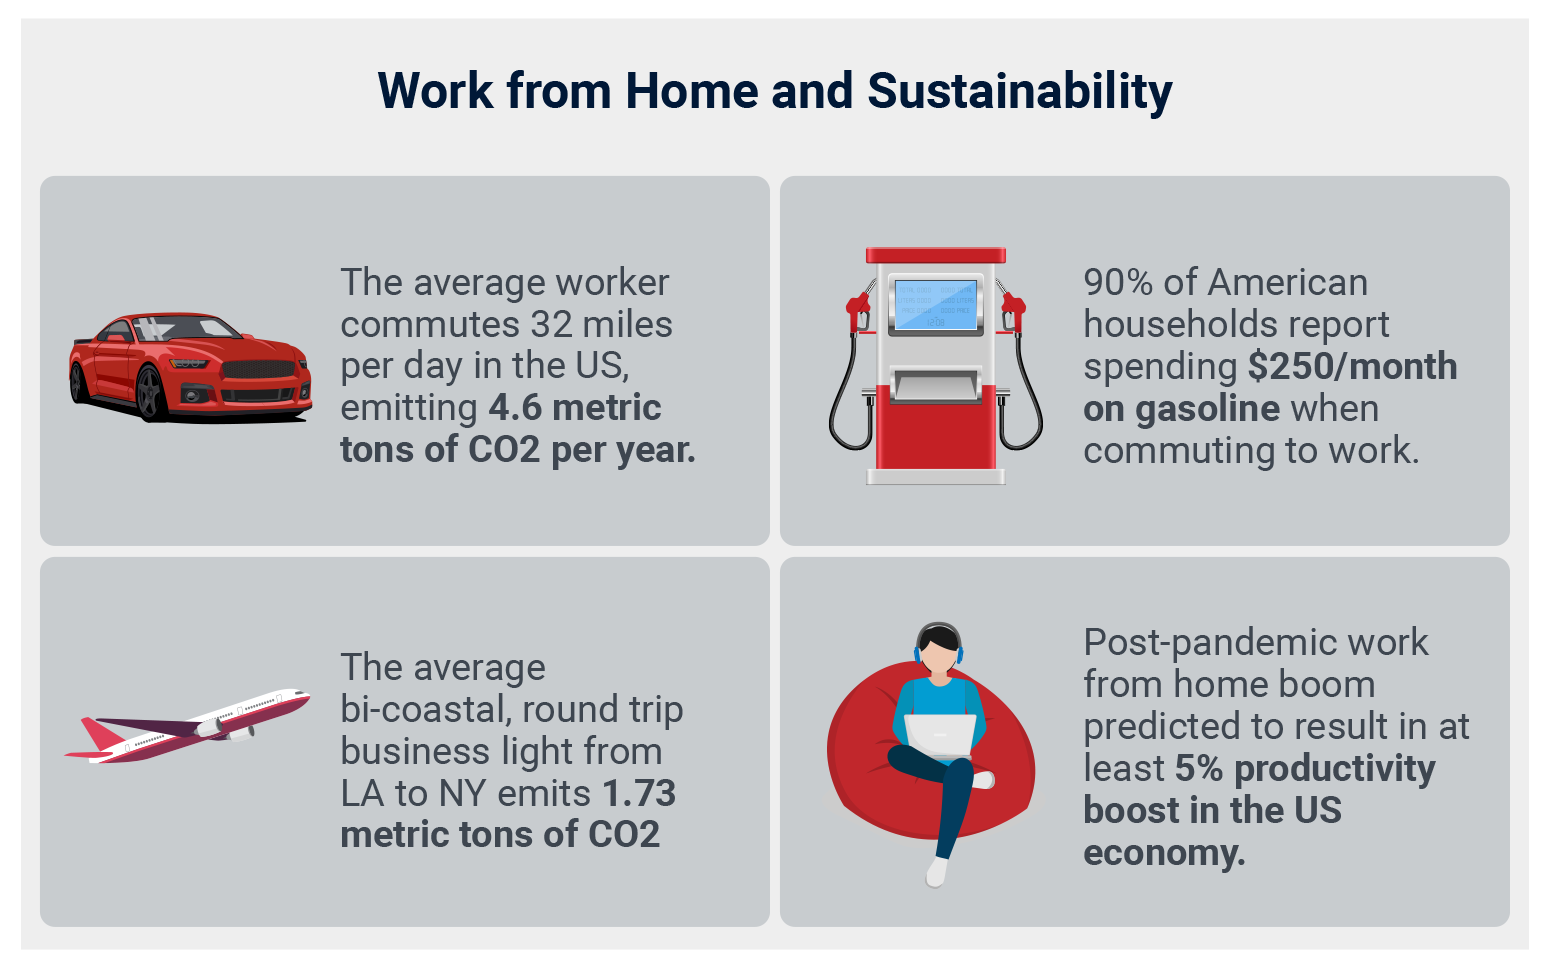 PLM Software for Work From Home and Sustainability